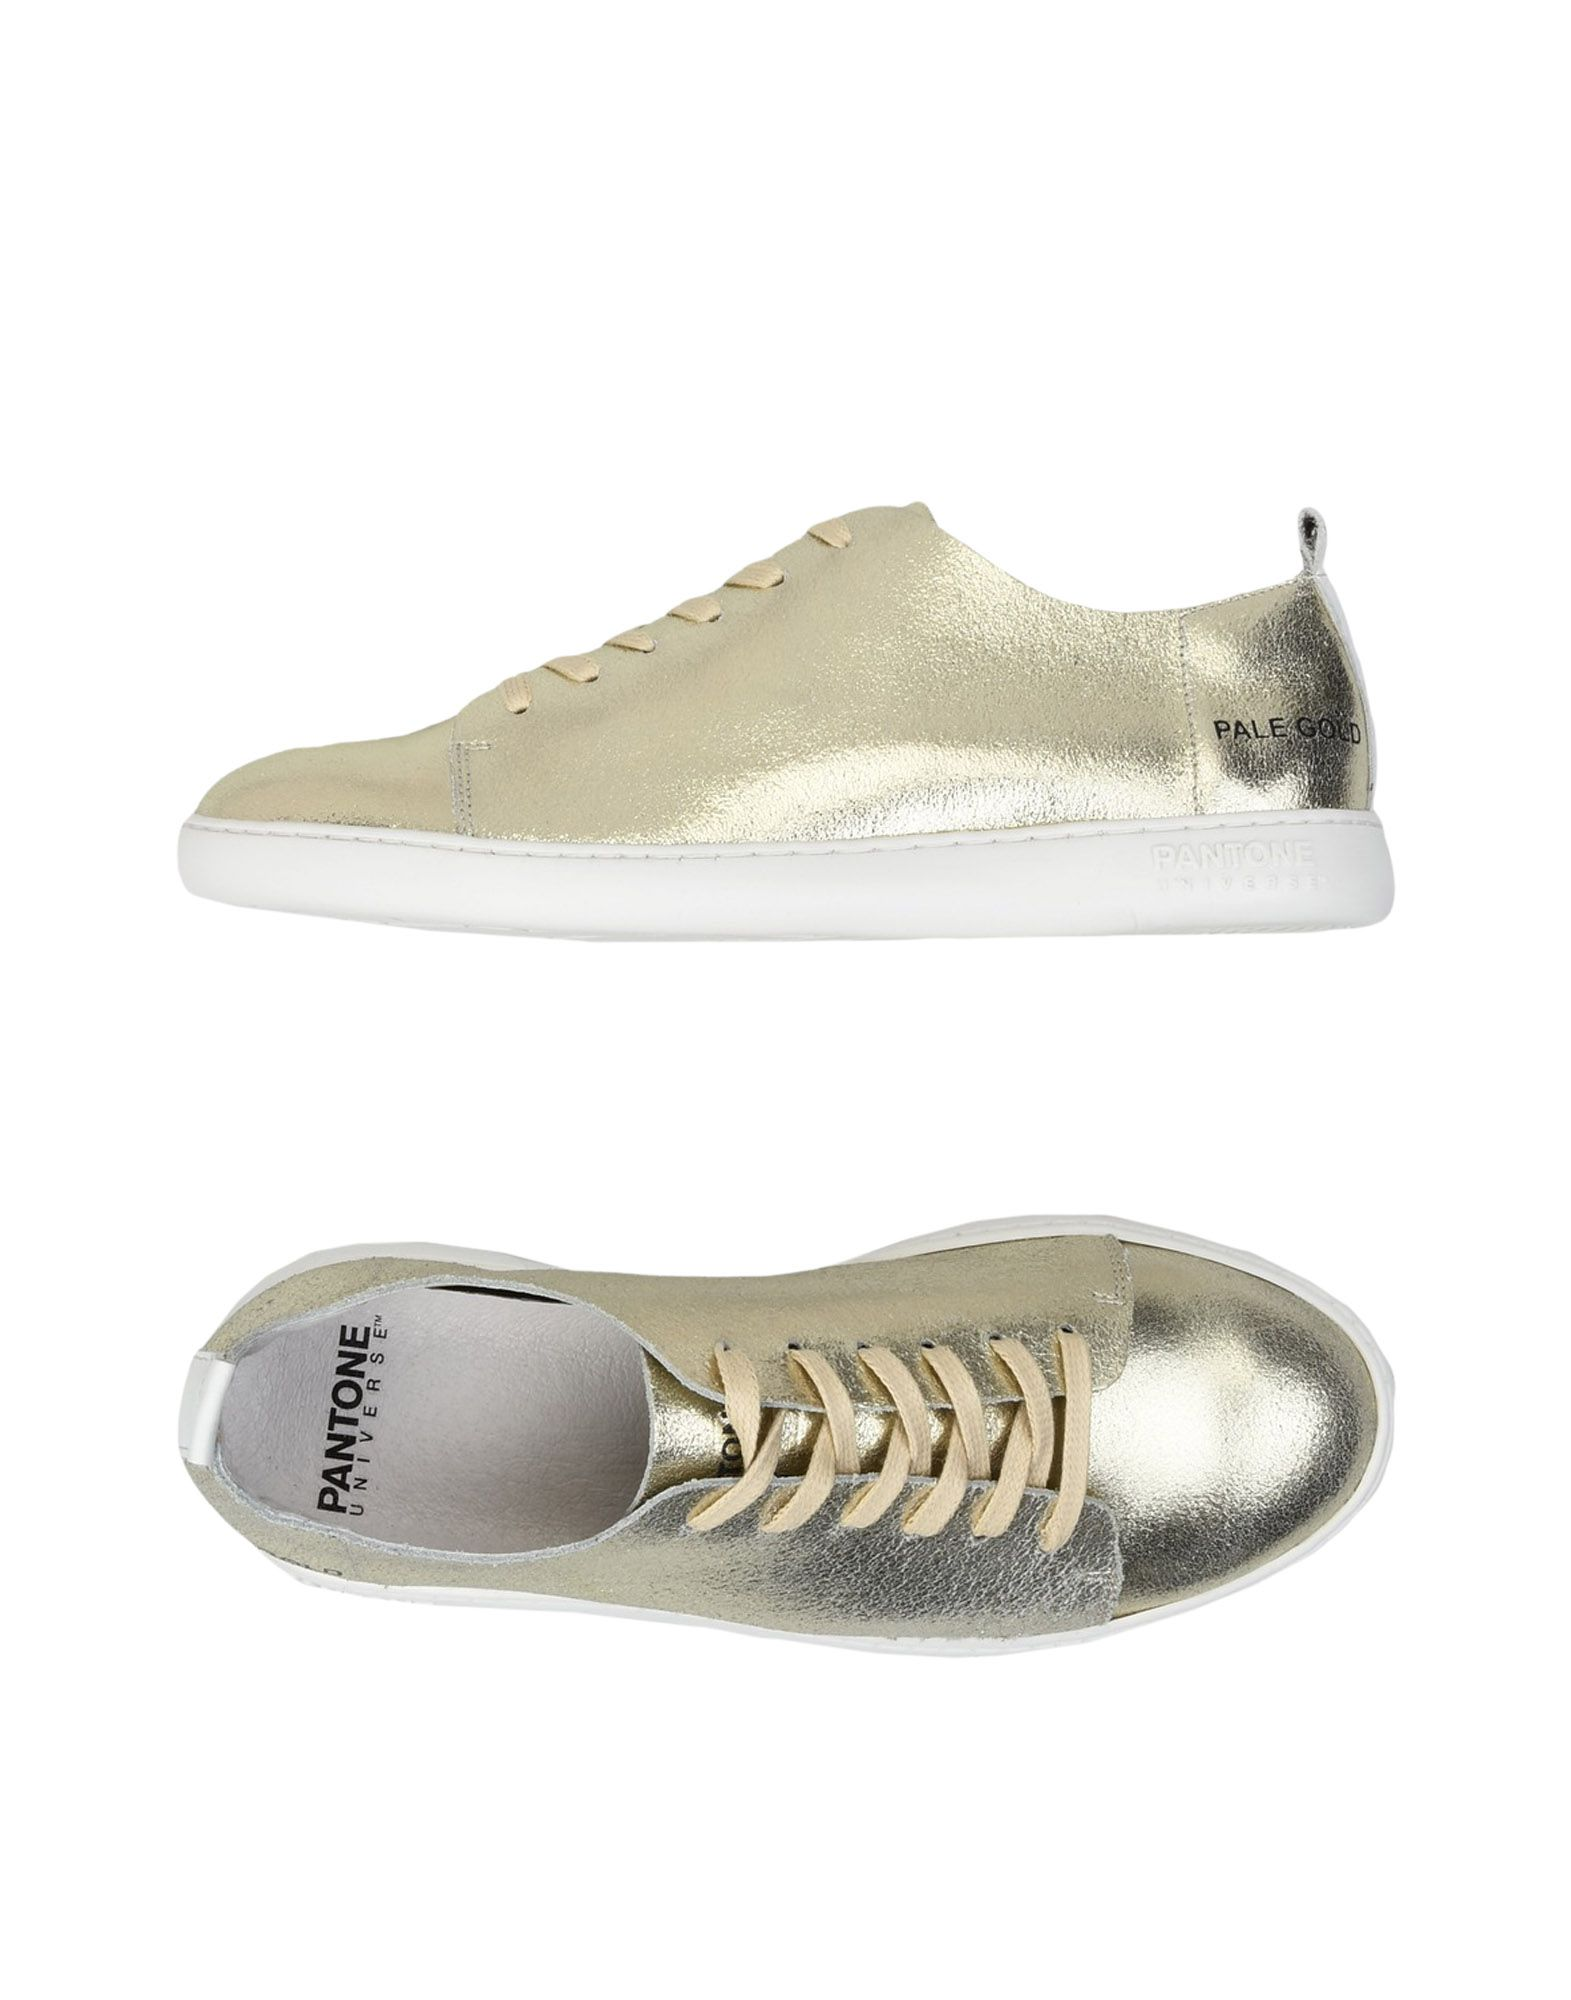 Pantone Universe Nyc Metallic Leather - Sneakers Universe - Women Pantone Universe Sneakers Sneakers online on  Canada - 11224244RT dede79